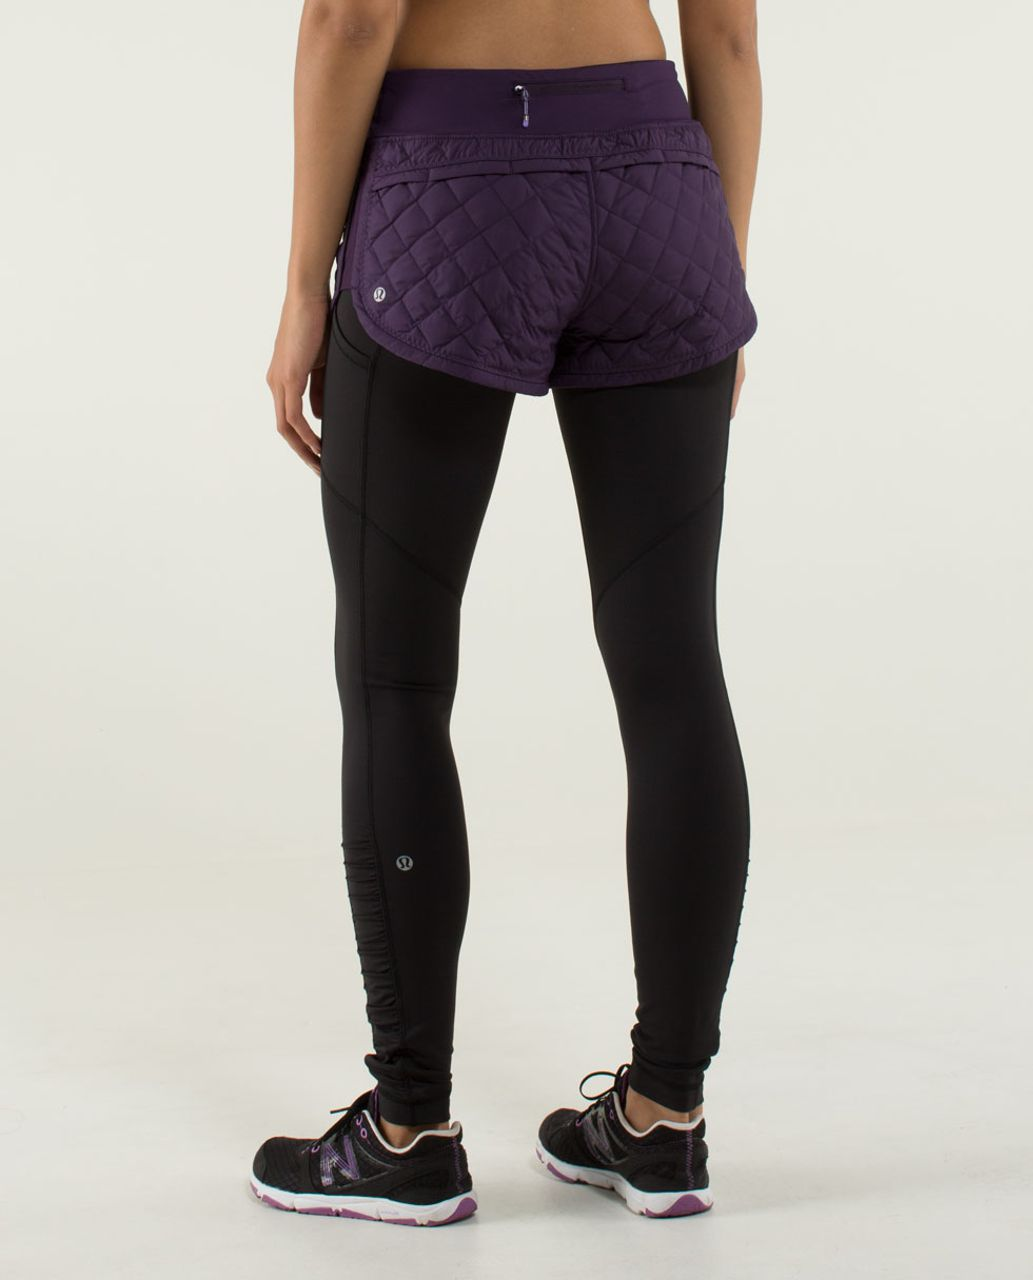 Lululemon Hot Cheeks Short - Deep Zinfandel